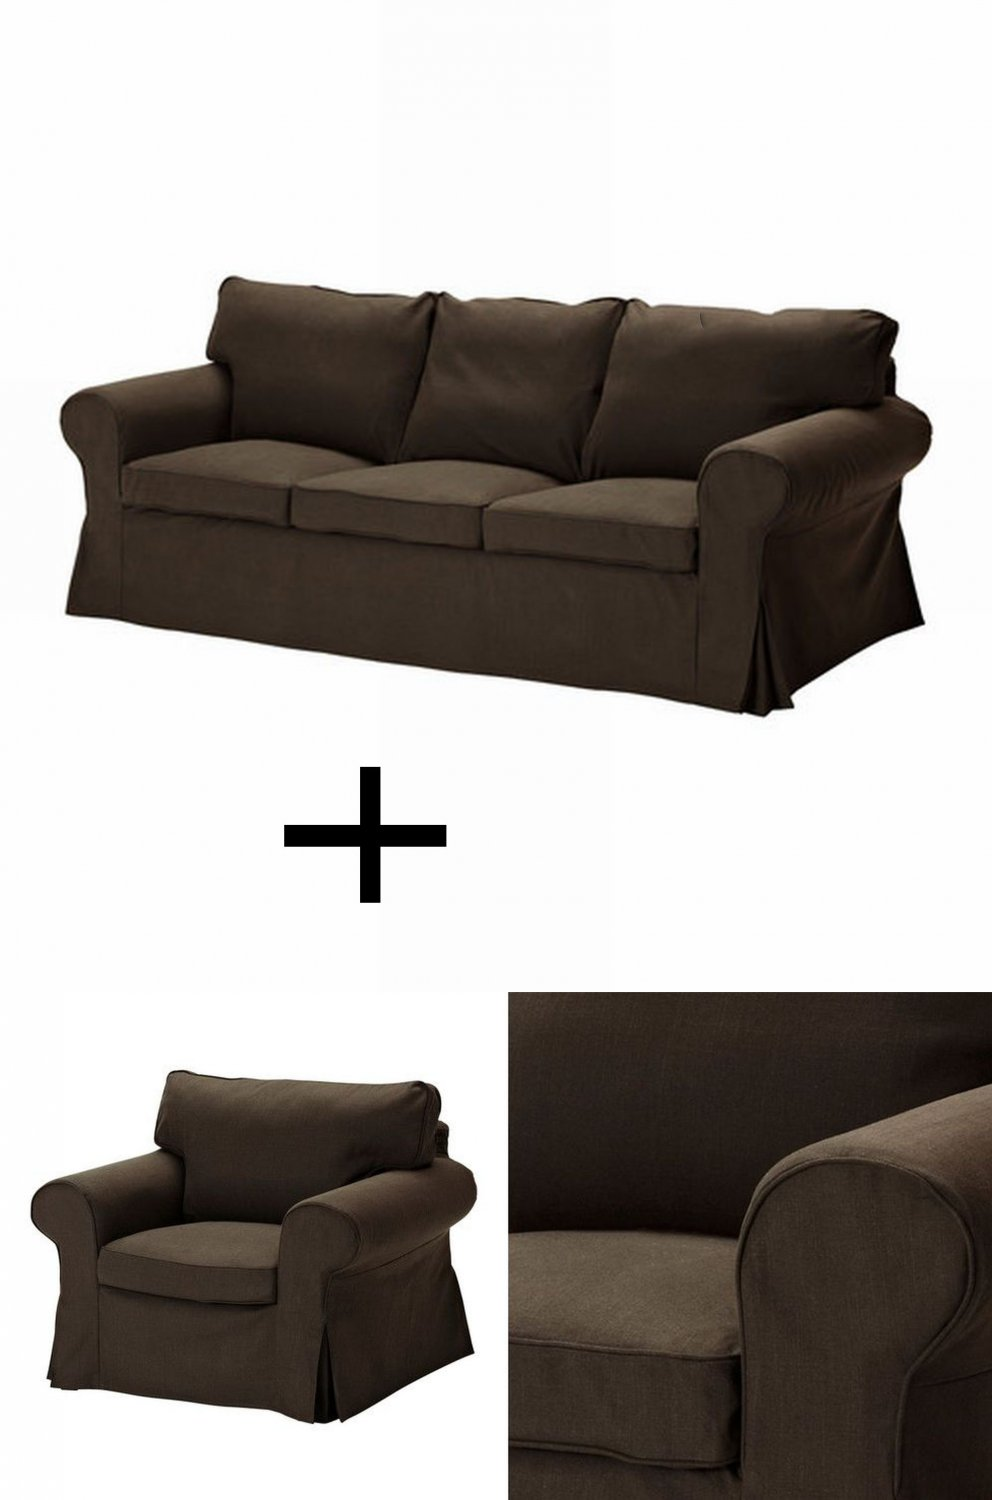 Ikea ektorp 3 seat sofa and armchair slipcover set covers for Ikea sofa slipcovers discontinued